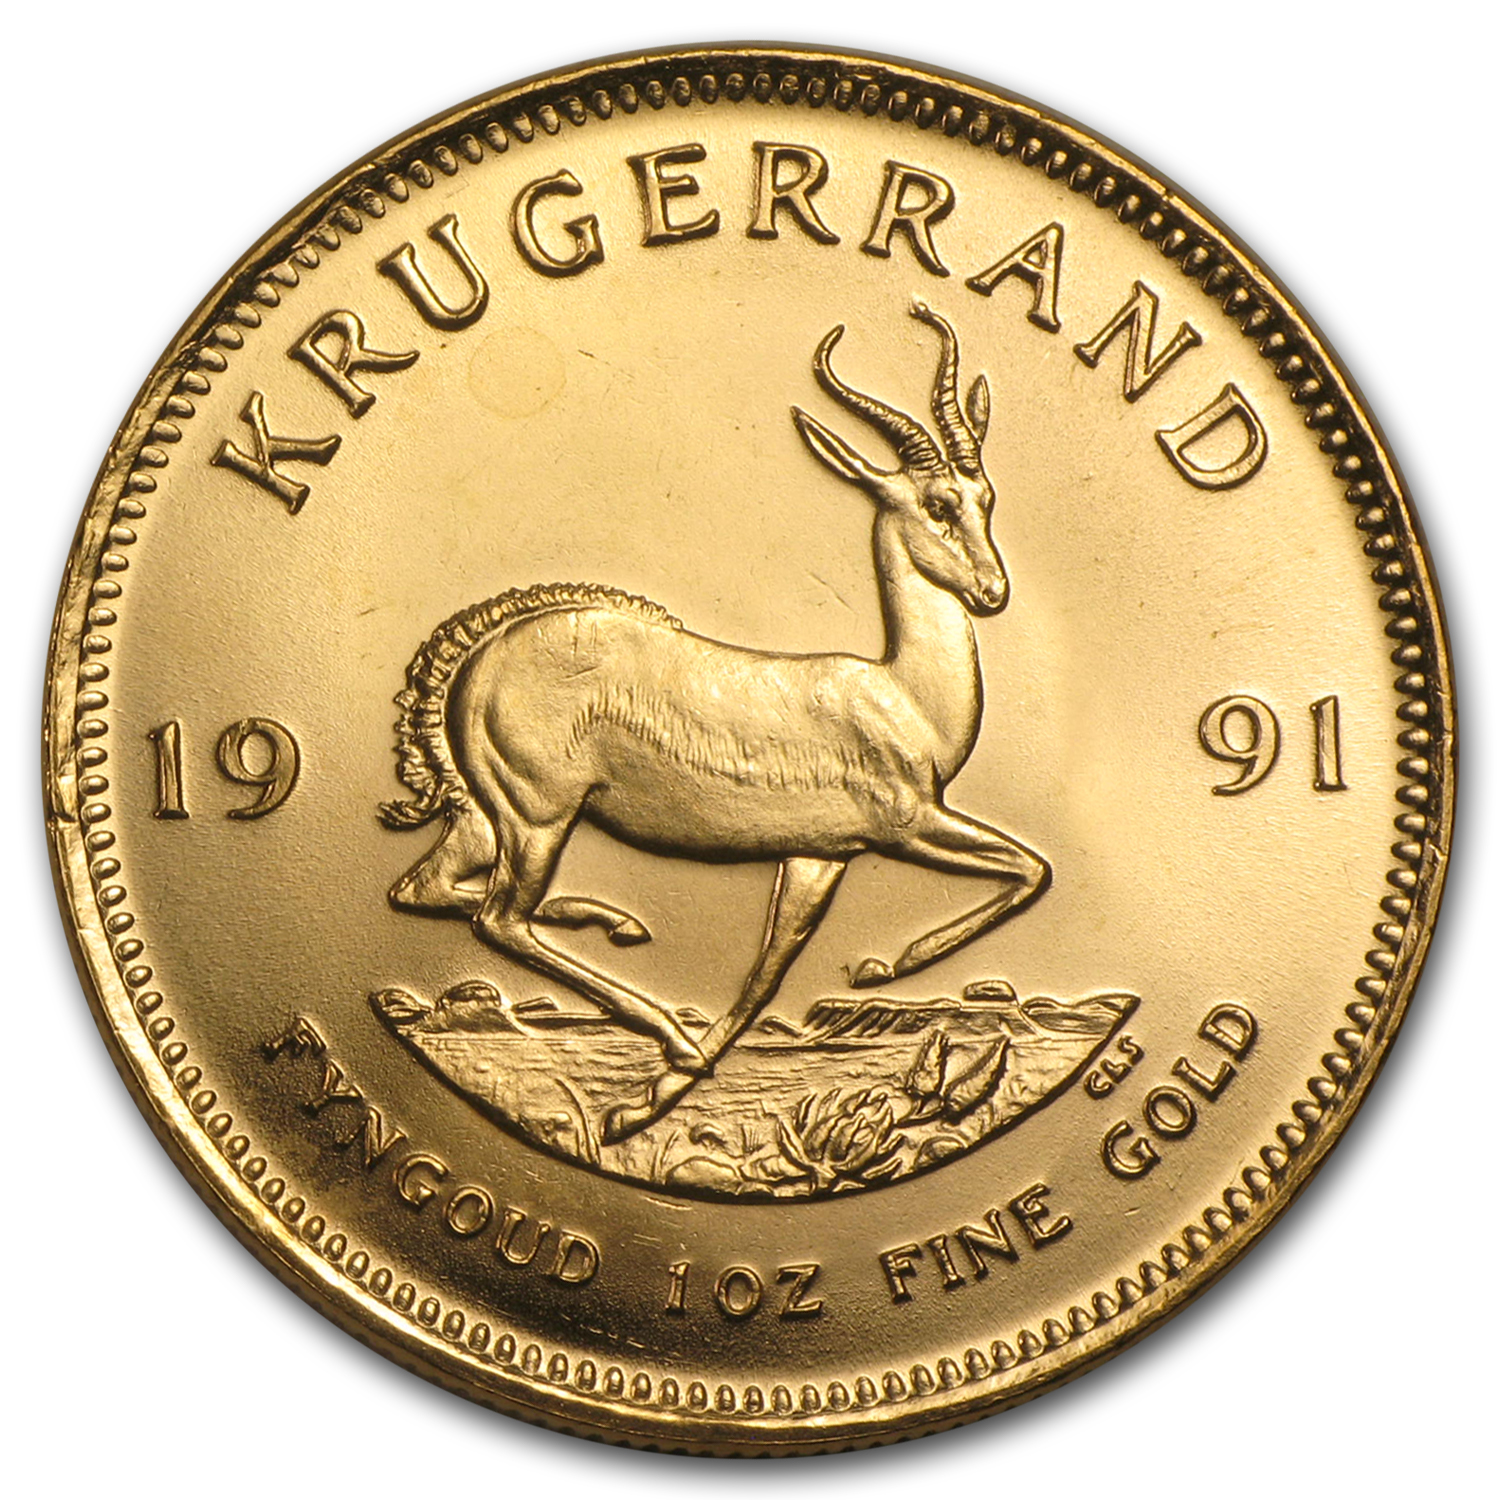 1991 South Africa 1 oz Gold Krugerrand